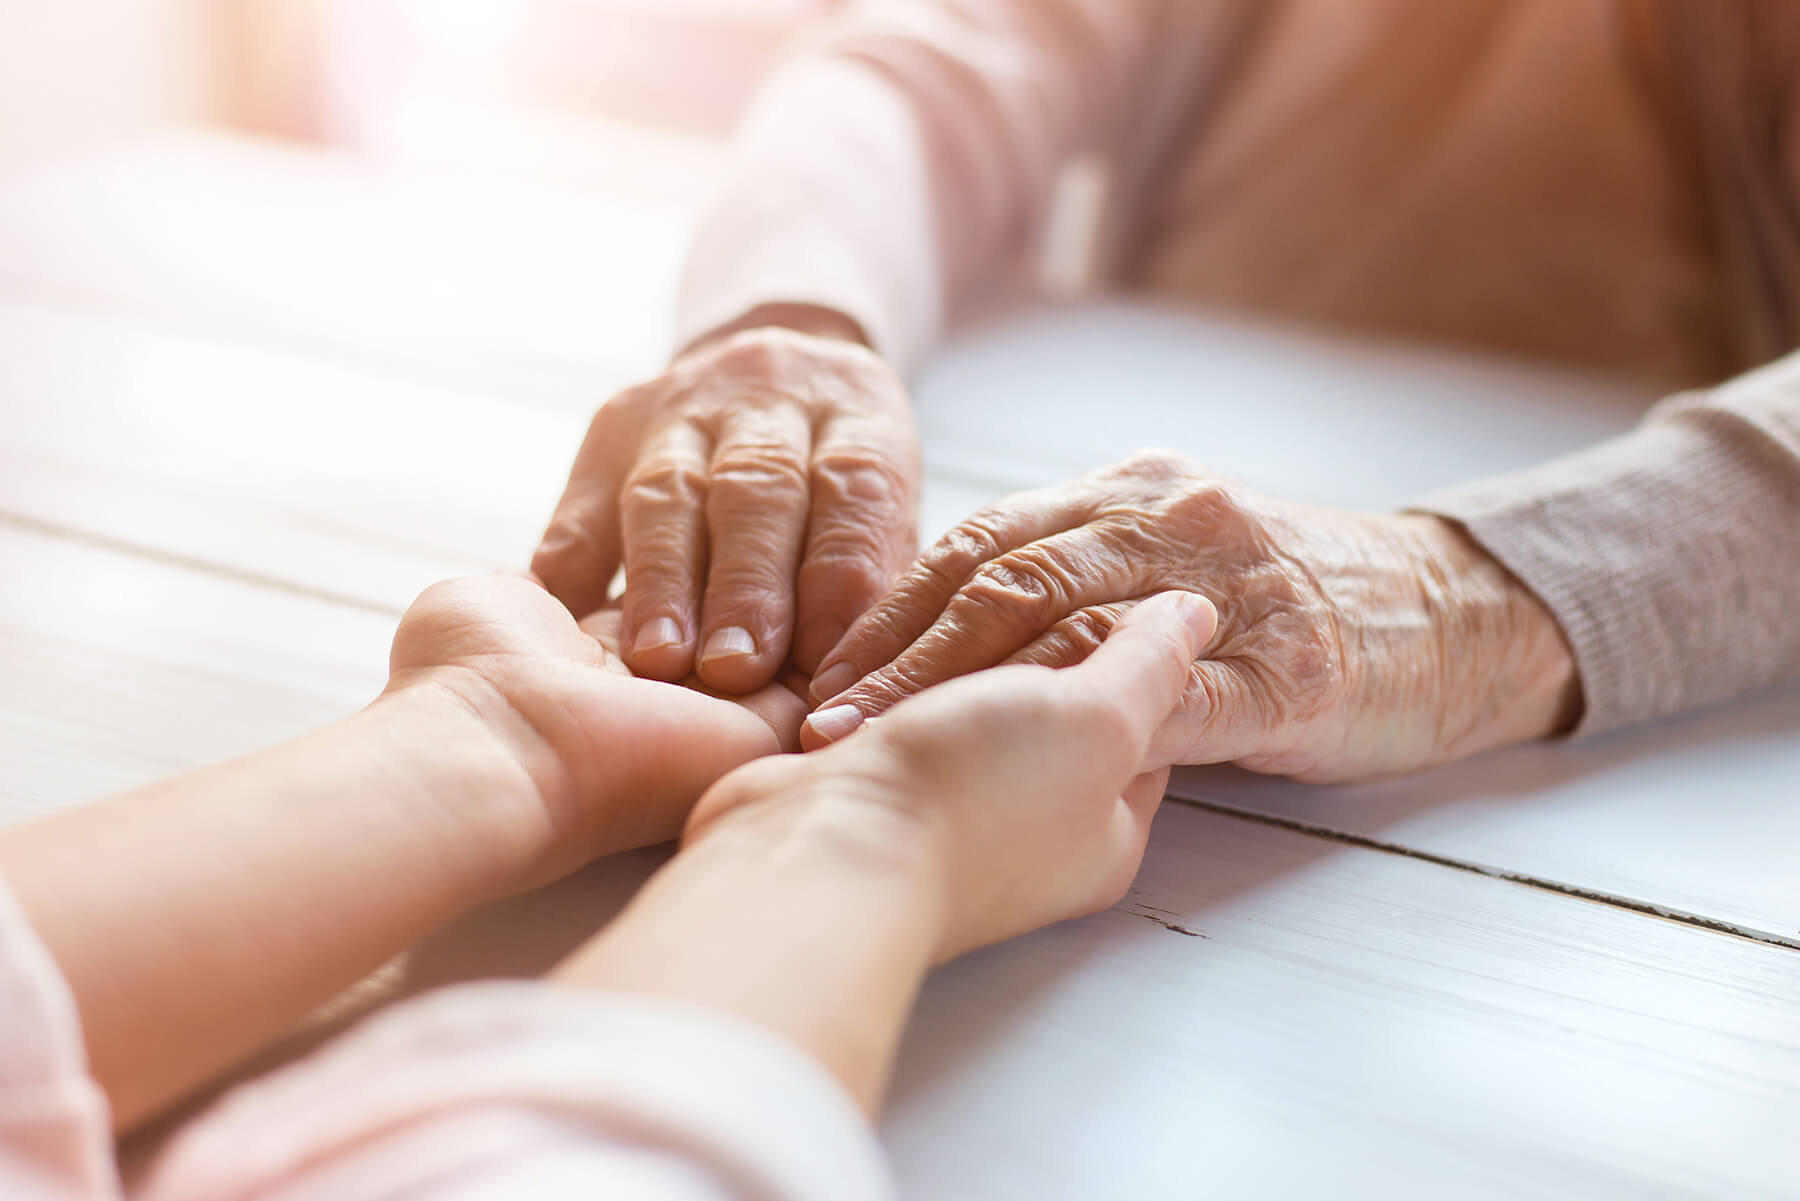 Aged Care Royal Commission Shows How Ethics Pays